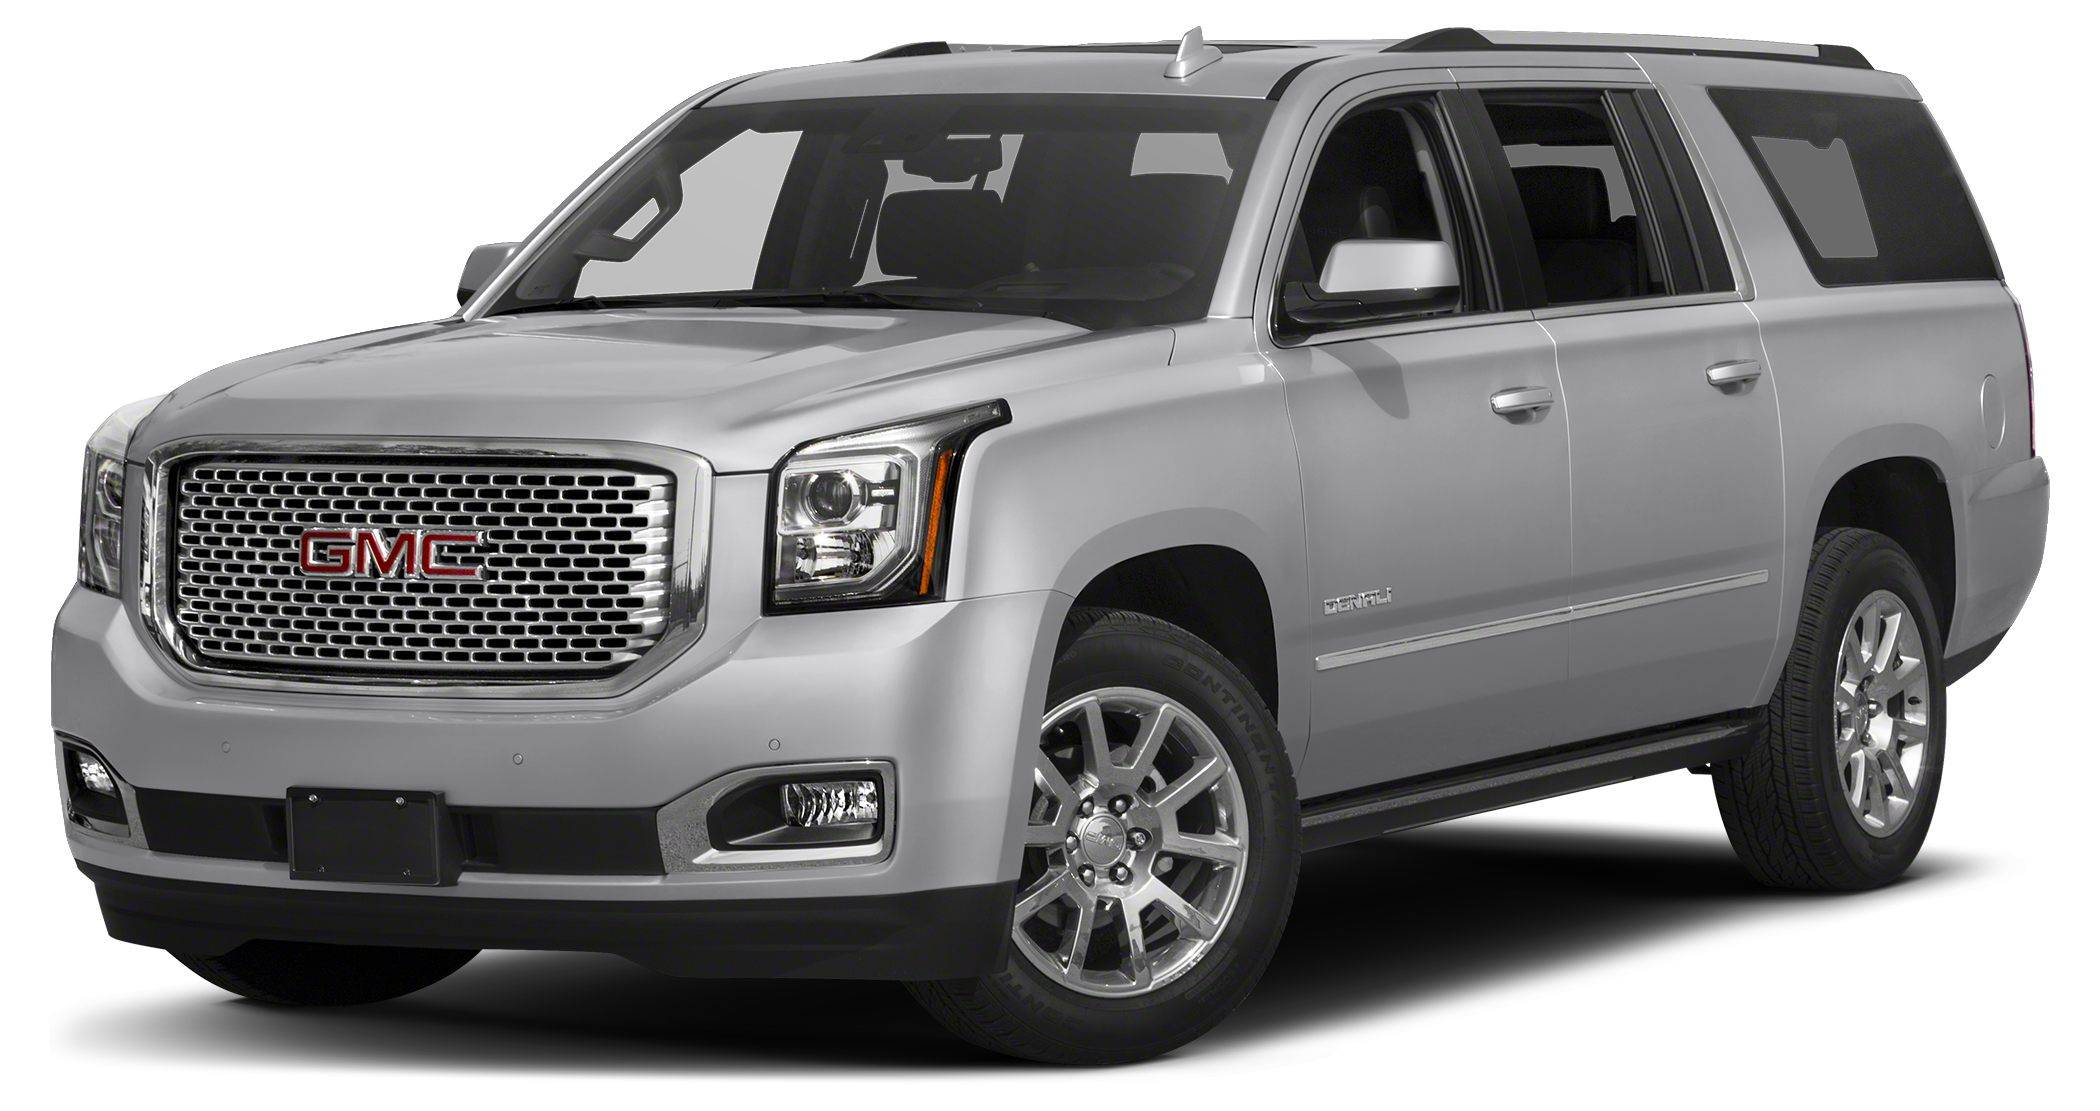 2018 GMC Yukon XL Denali Boasts 21 Highway MPG and 14 City MPG Miles 6Color Quicksilver Metall